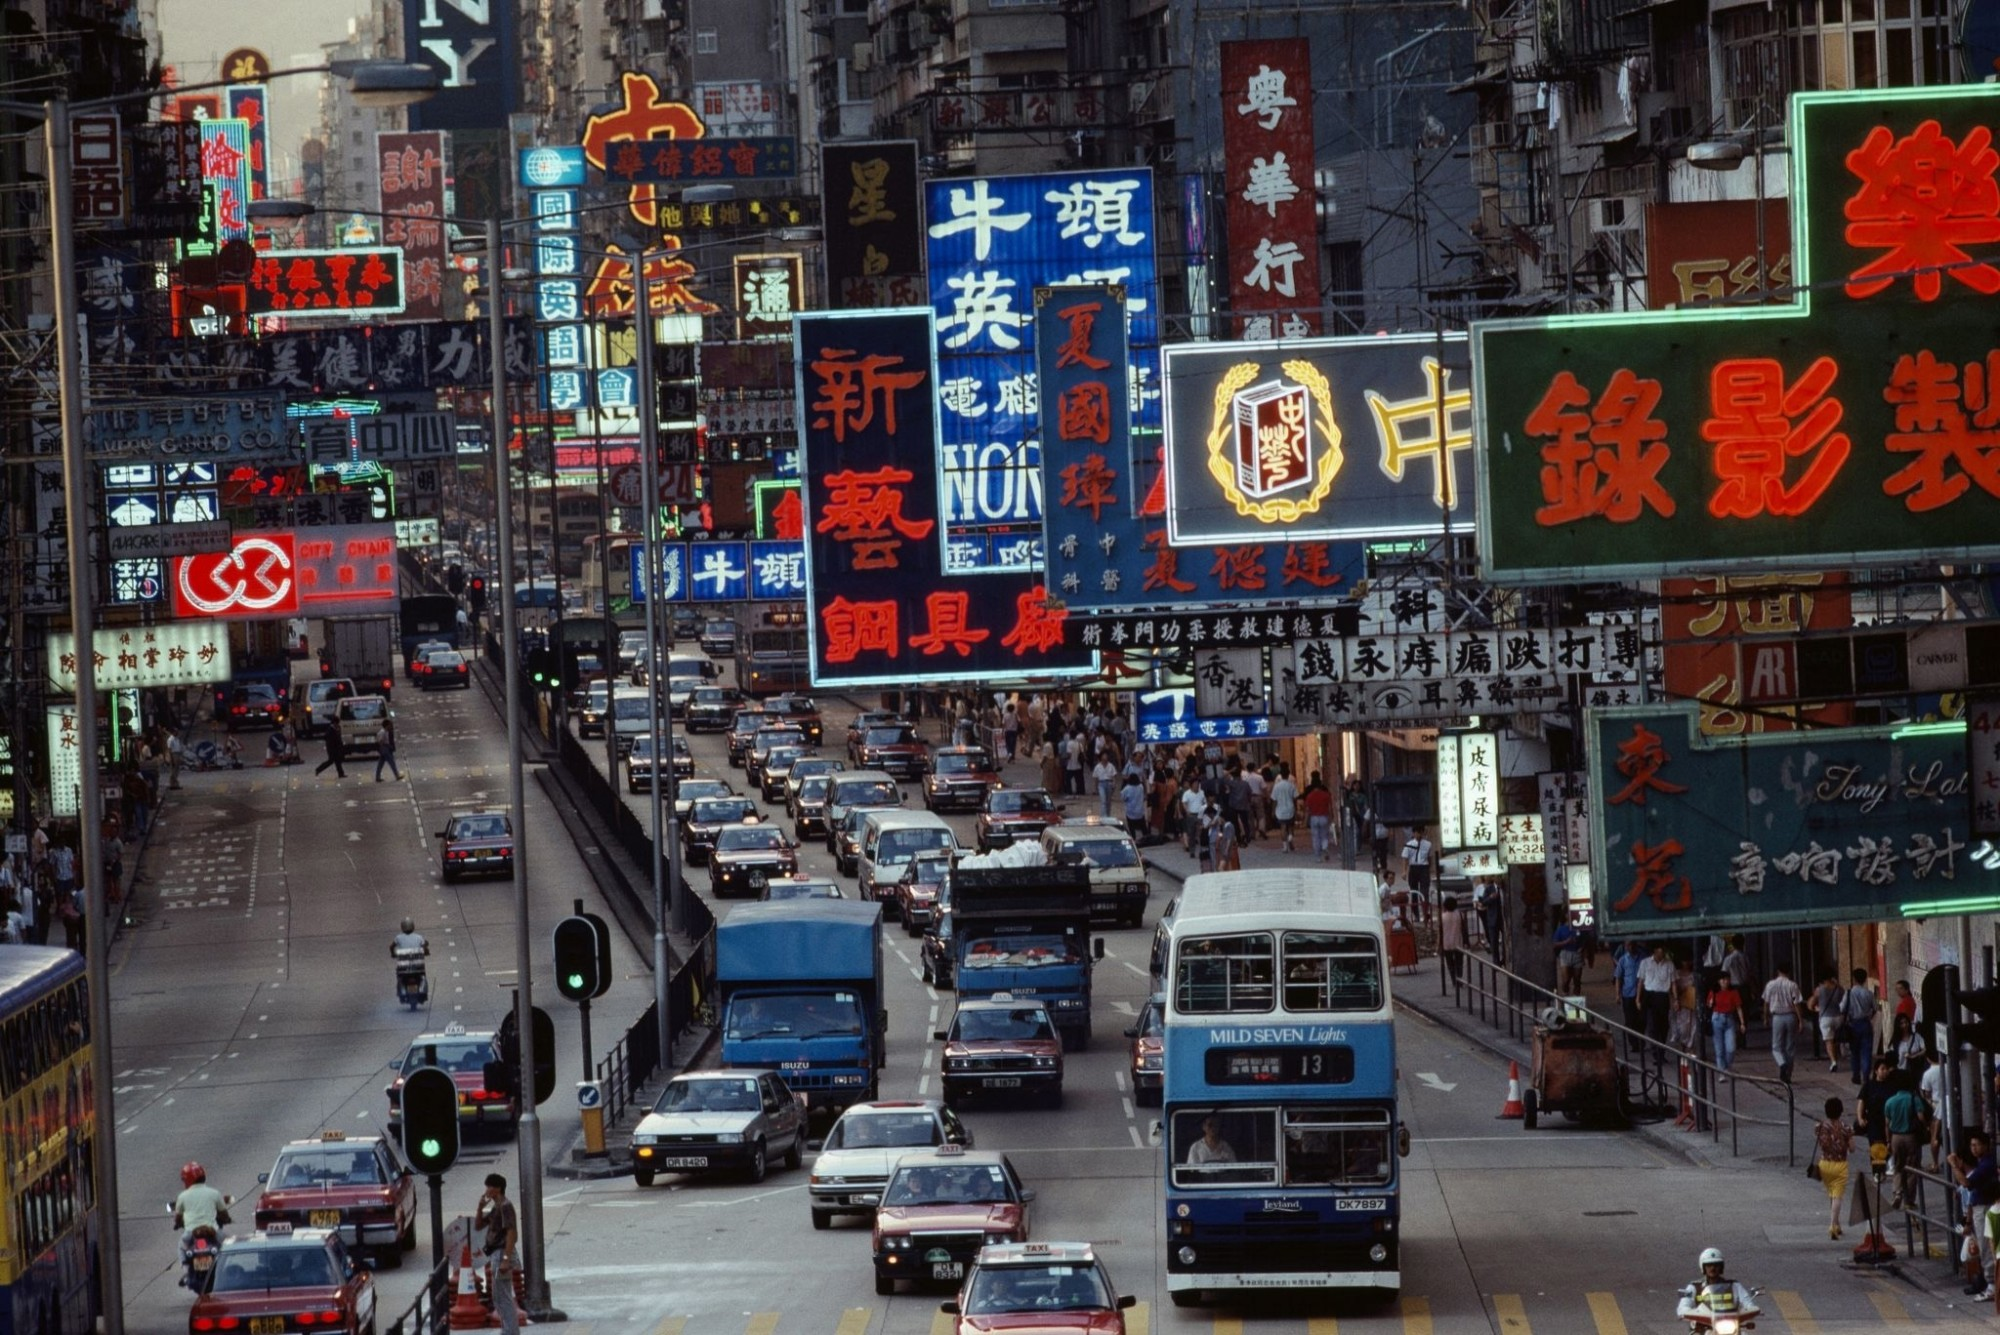 1989 Honkong Nathan Road, Kowloon, Hong Kong (Photo by Jodi Cobb